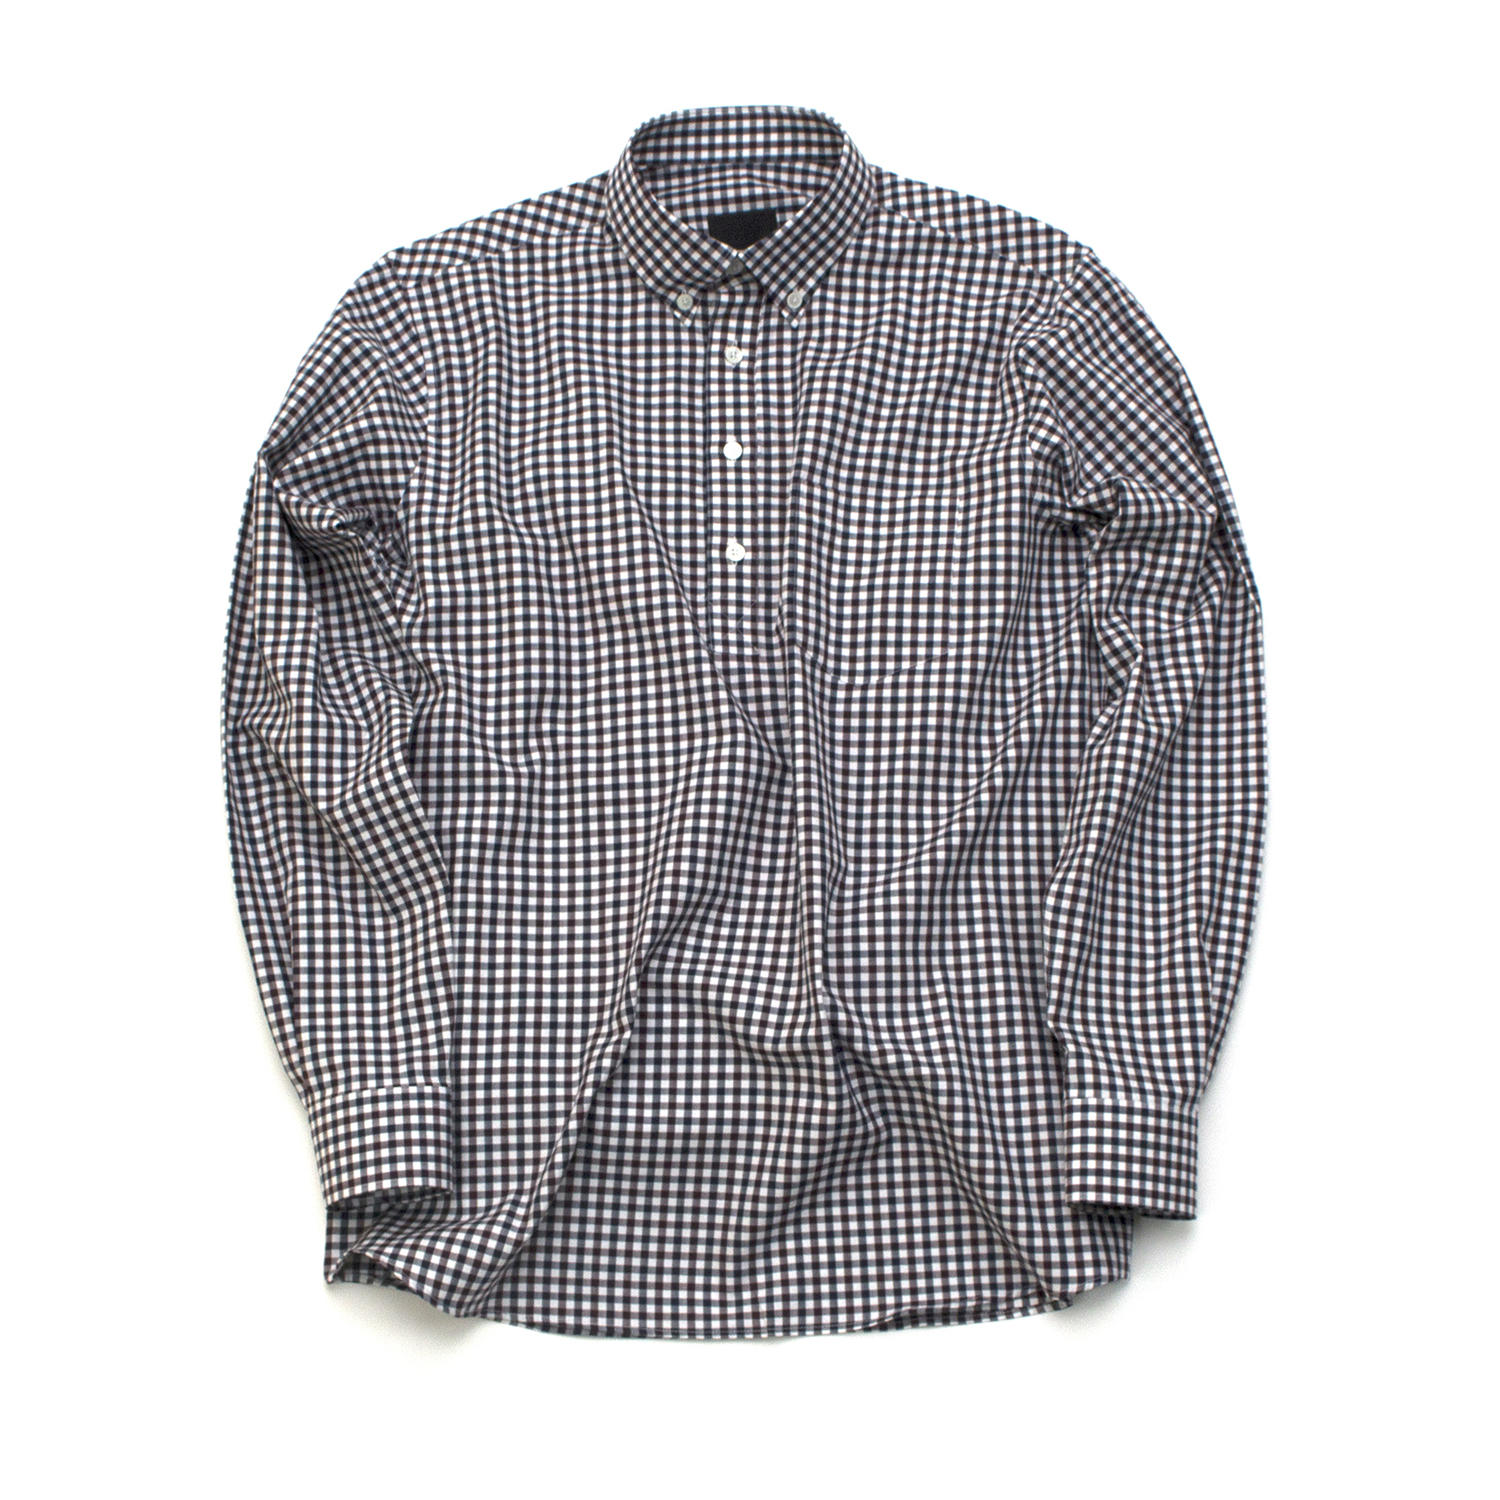 [디미트리블랙] 17SS GINGHAM CHECK FULLOVER SHIRTS